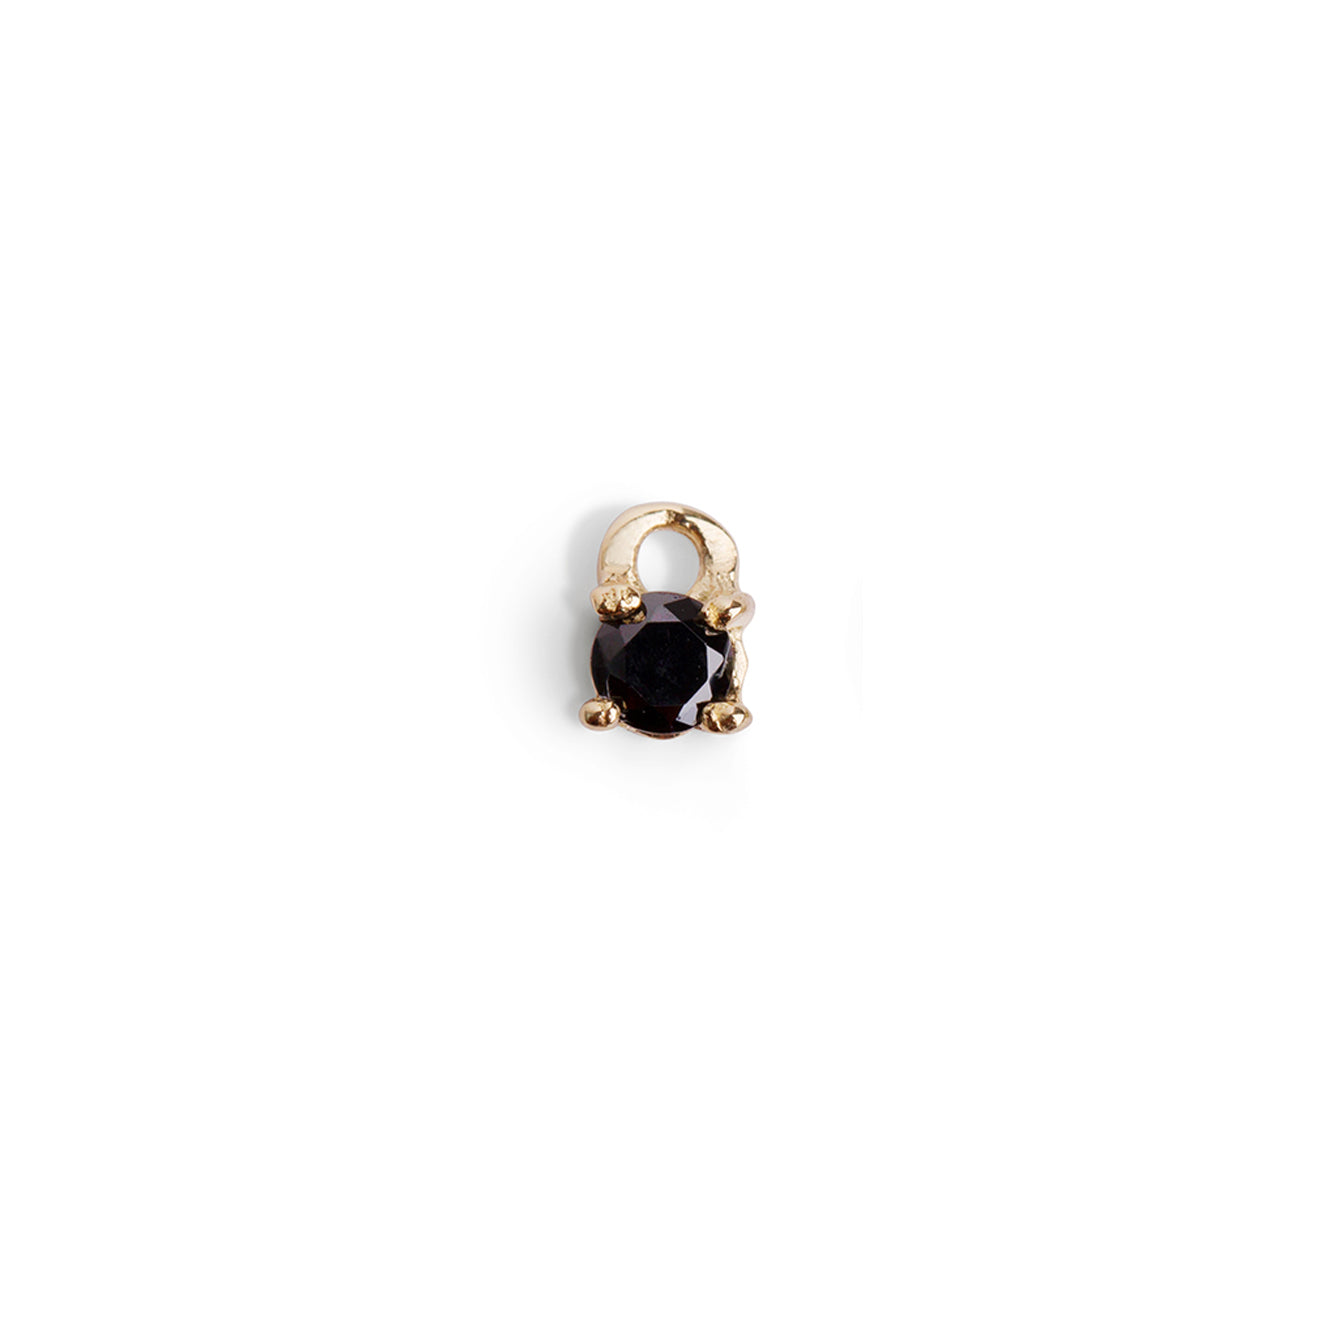 The 2.5mm Black Spinel Charm in Gold-Pendant-Black Betty Design